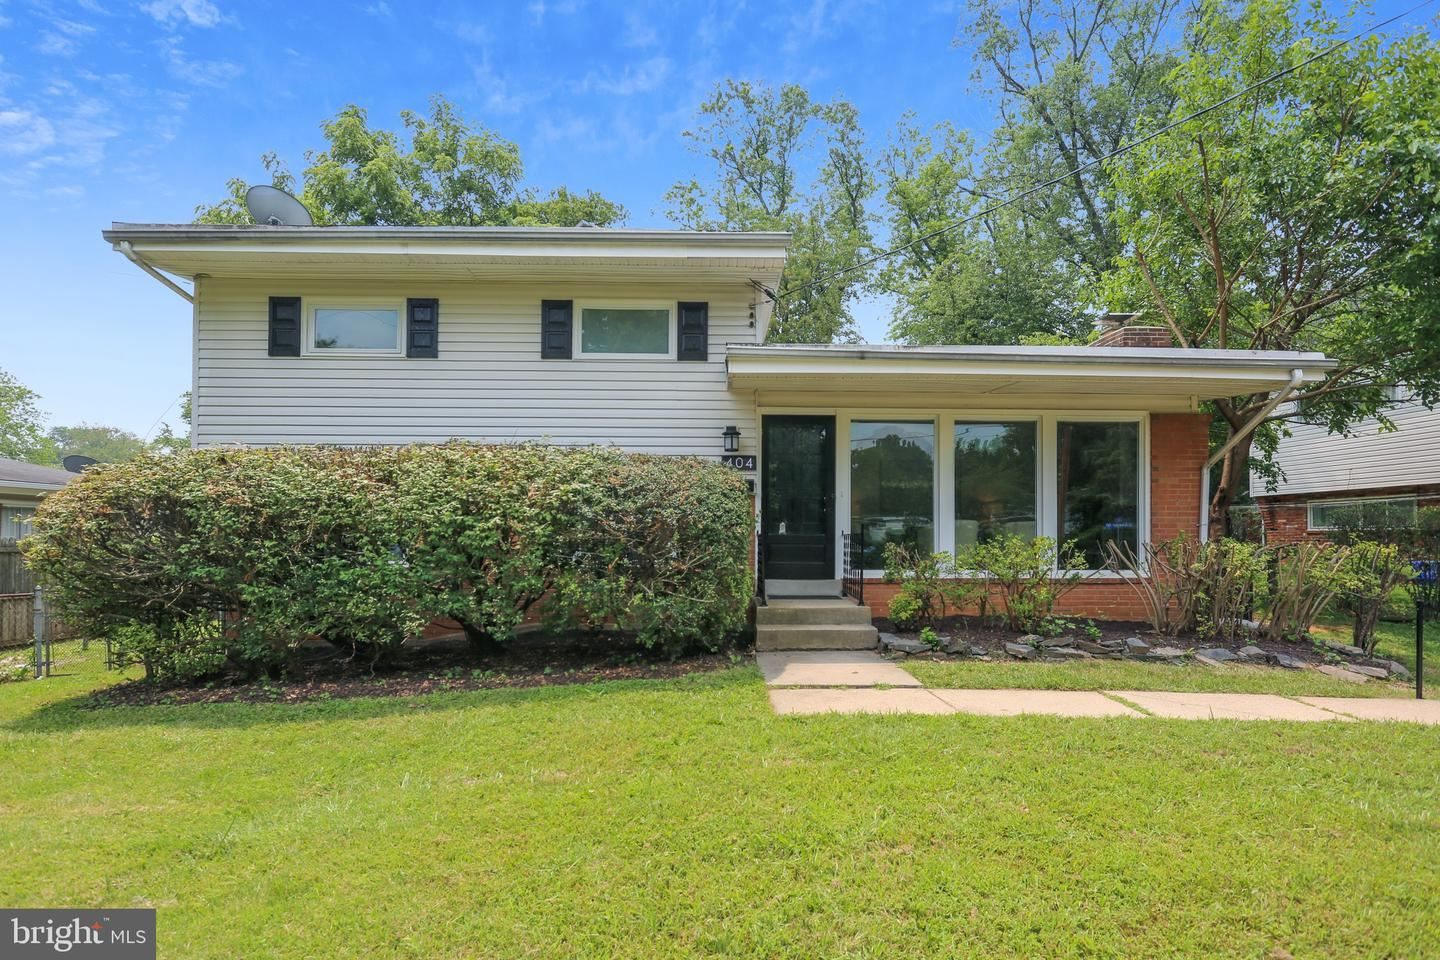 Photo of 404 GRUENTHER AVE, ROCKVILLE, MD 20851 (MLS # MDMC2006956)